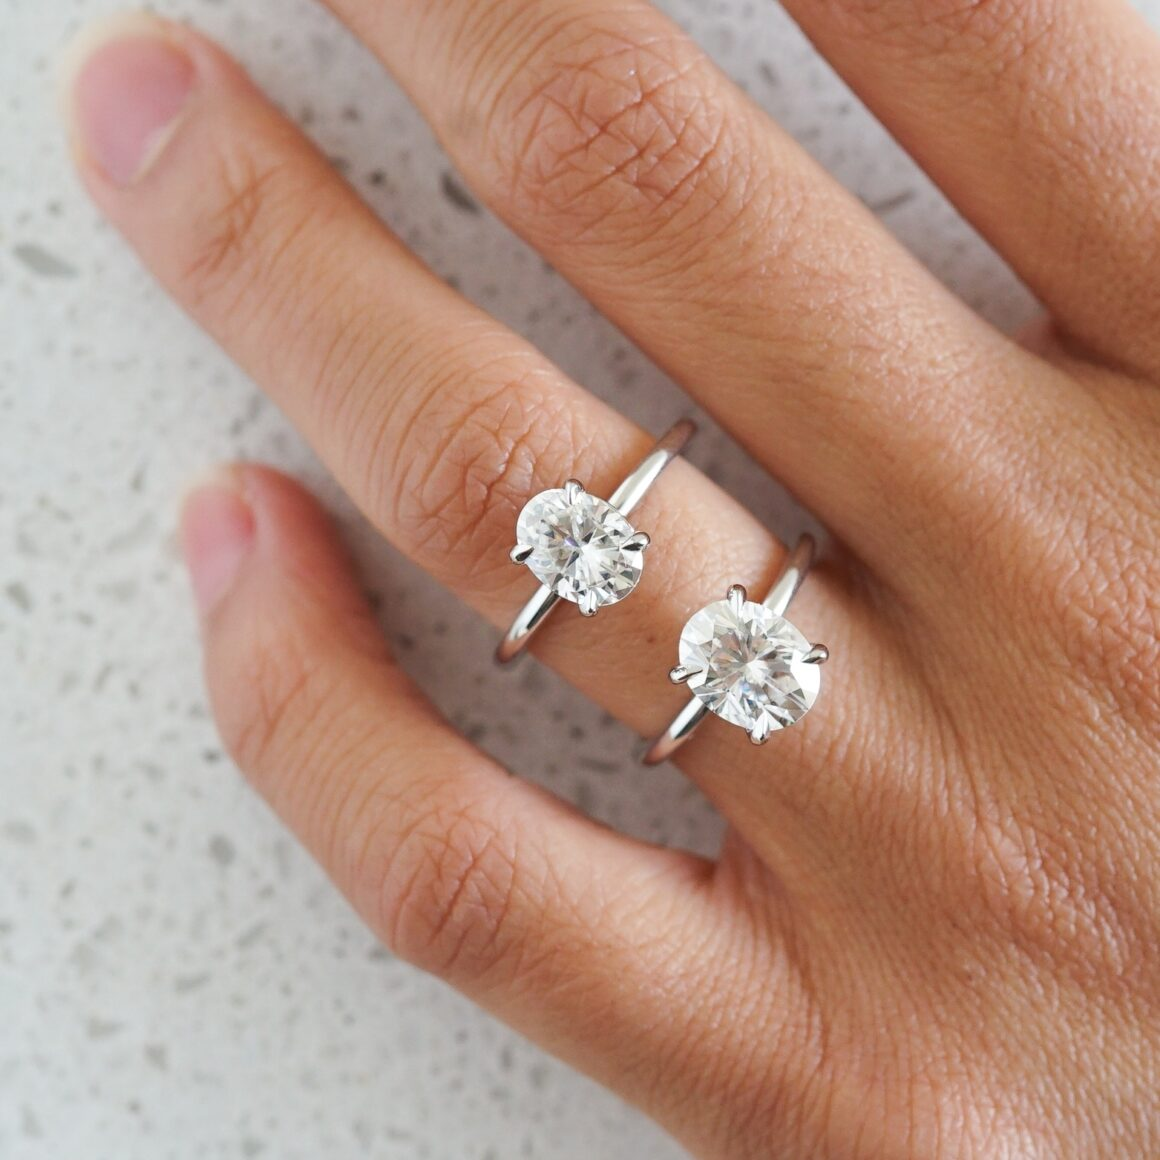 Conflict-Free Minimalist Engagement Ring Brands - Do Amore